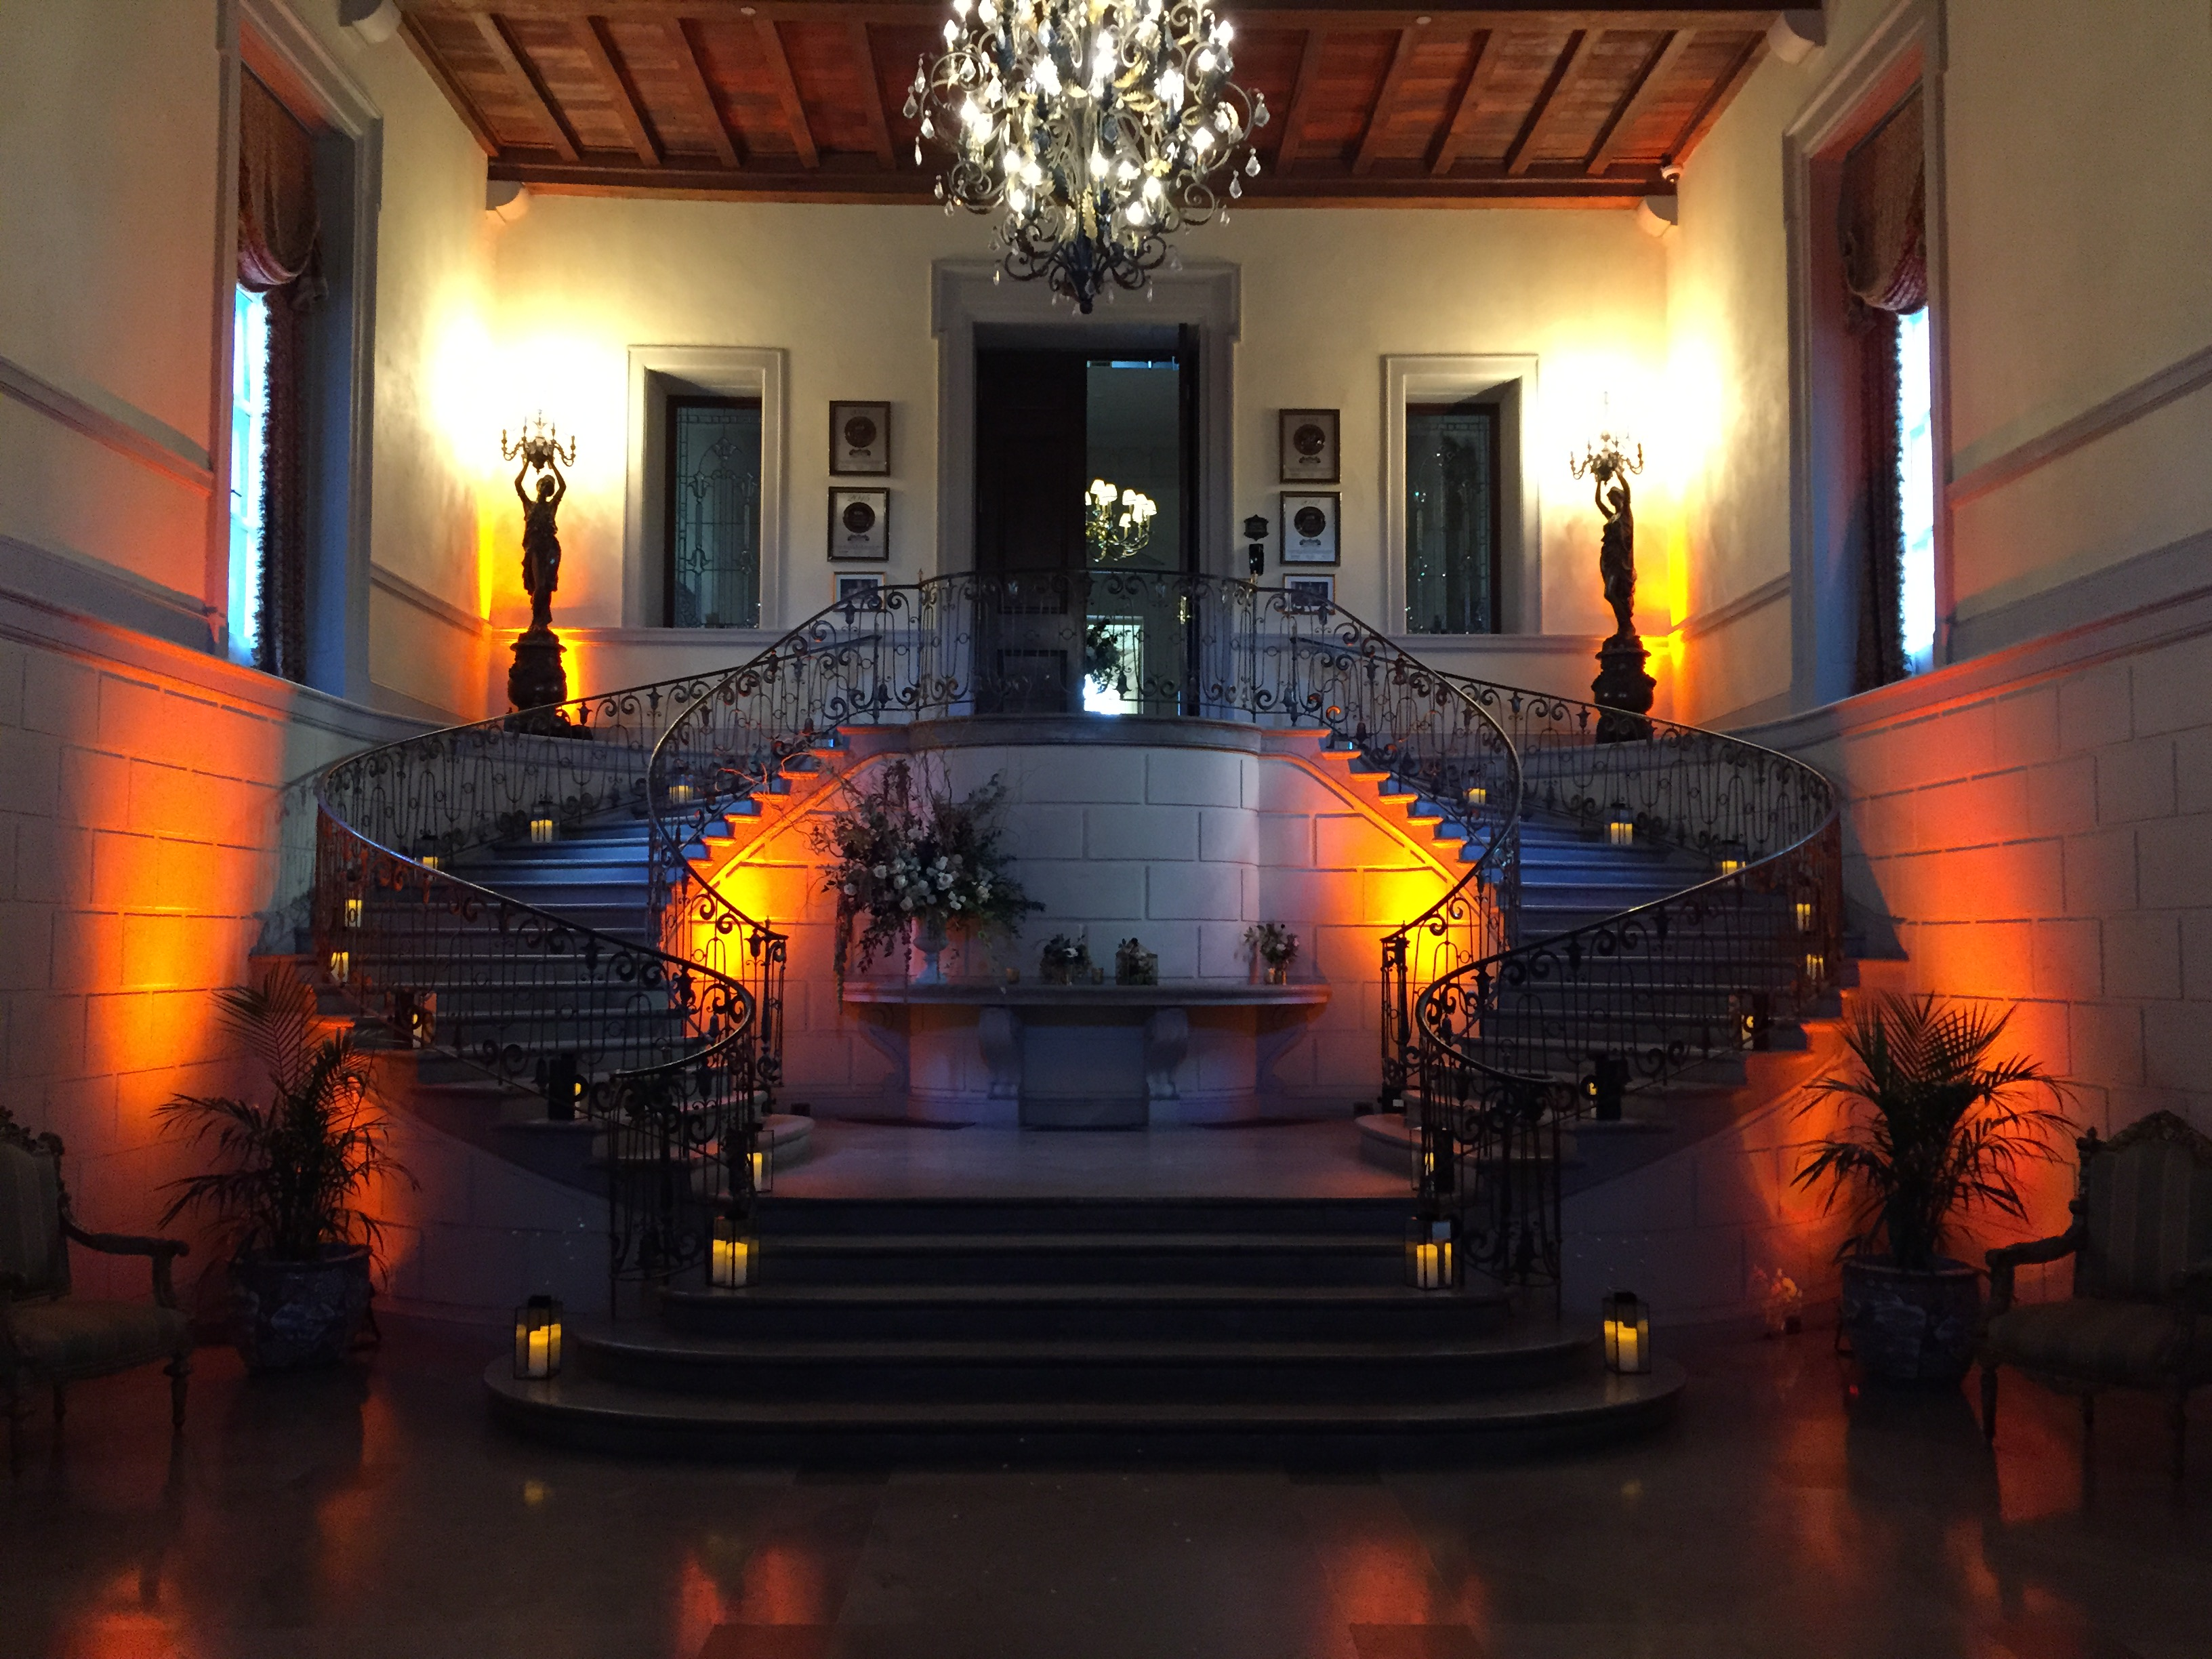 Oheka Castle Wedding Live Wedding Bands In New York Amp NY DJs Feat The Band Central Park